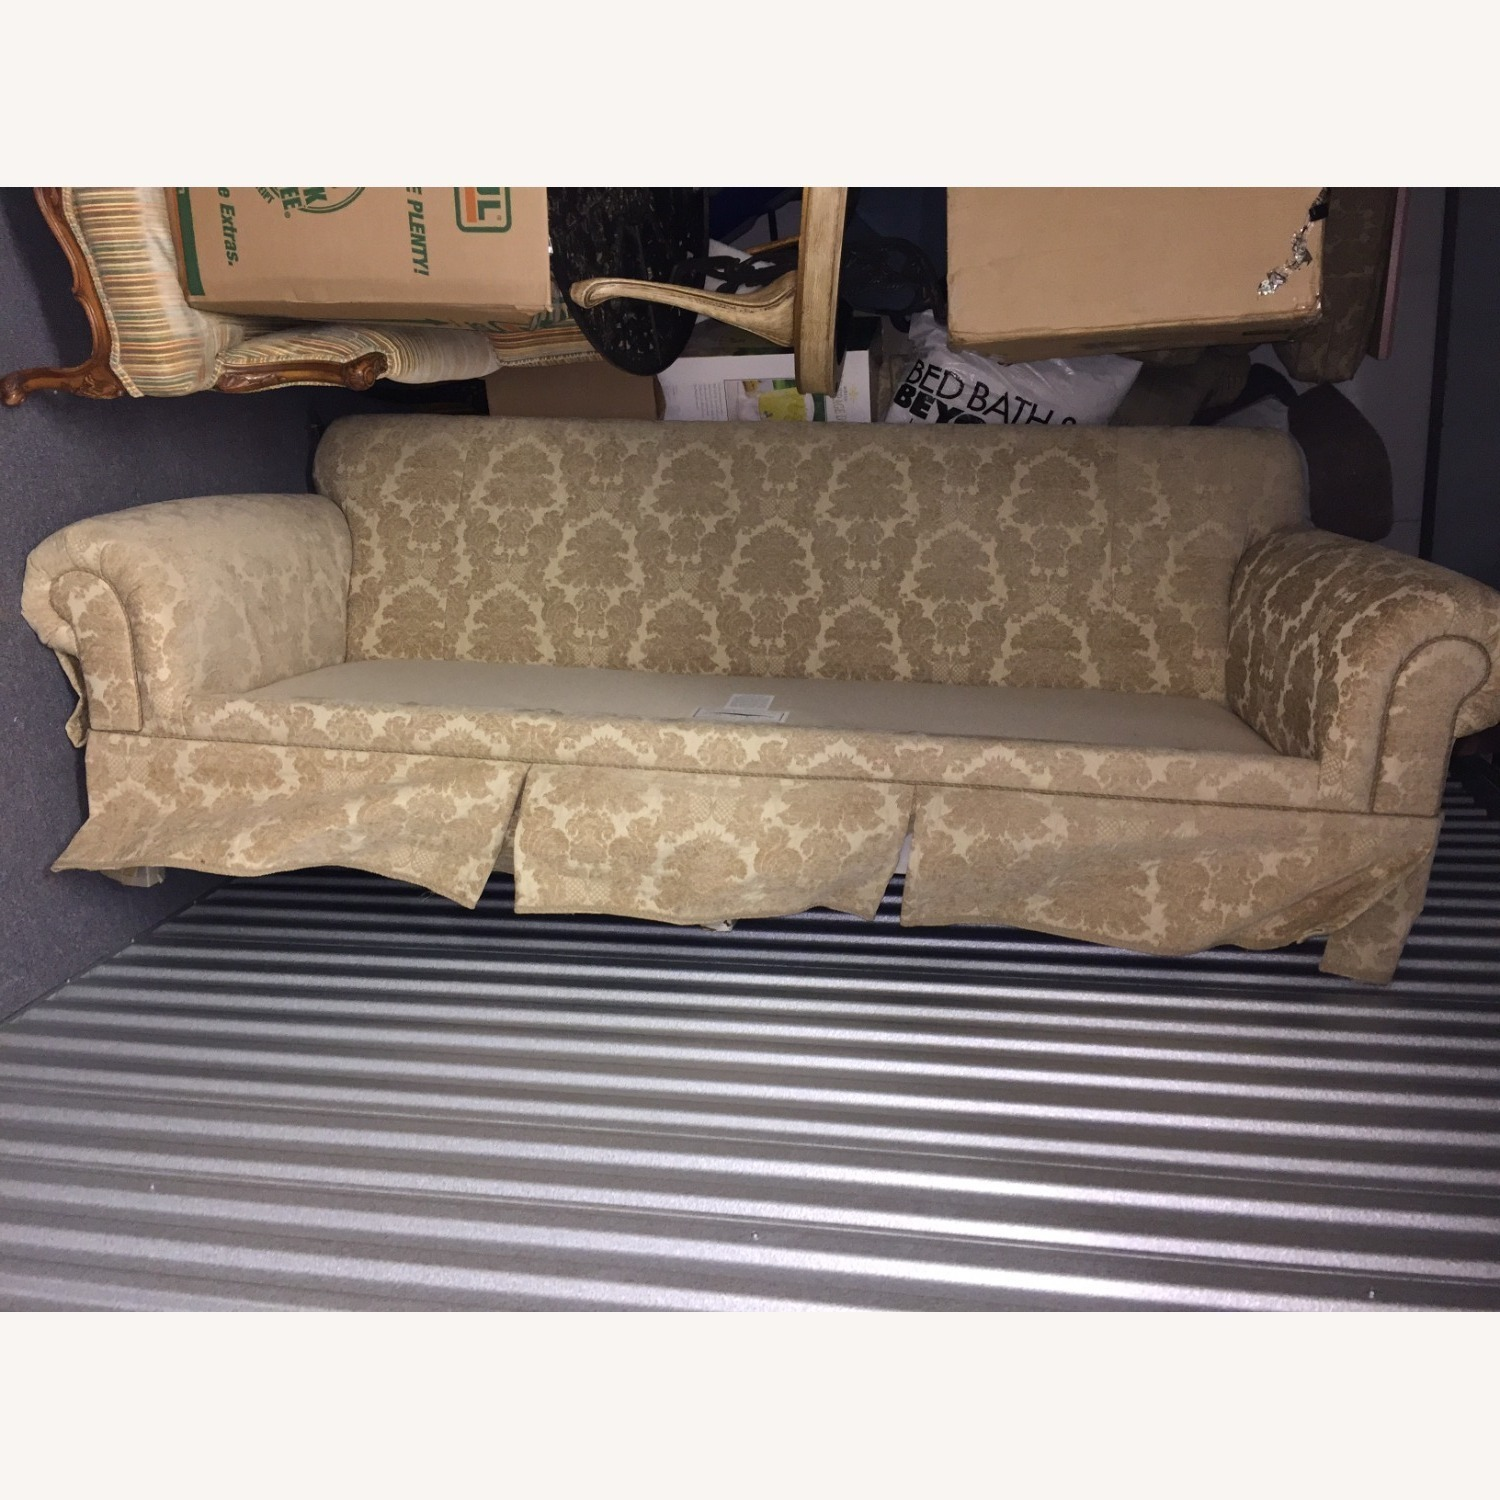 3 Seater Couch - image-10